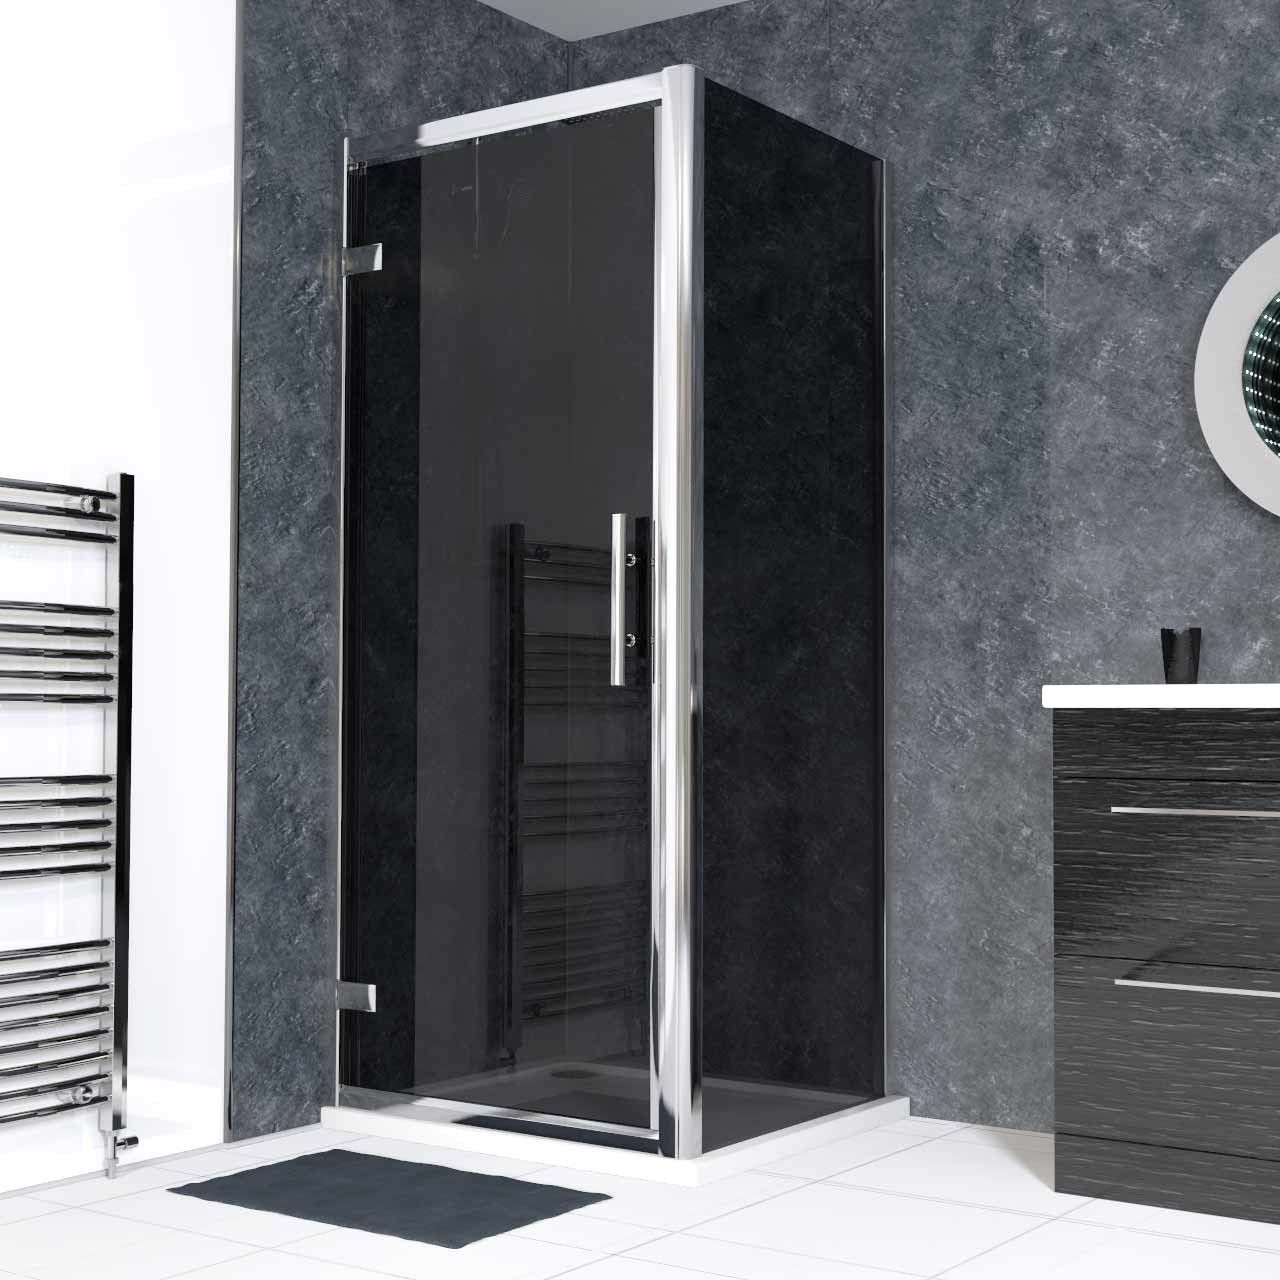 A Hinged Shower Enclosure Is A Simple Option With A Modern Design That Will Look Good In Any Bathroom The Shower Enclosure Bathroom Inspiration Modern Design